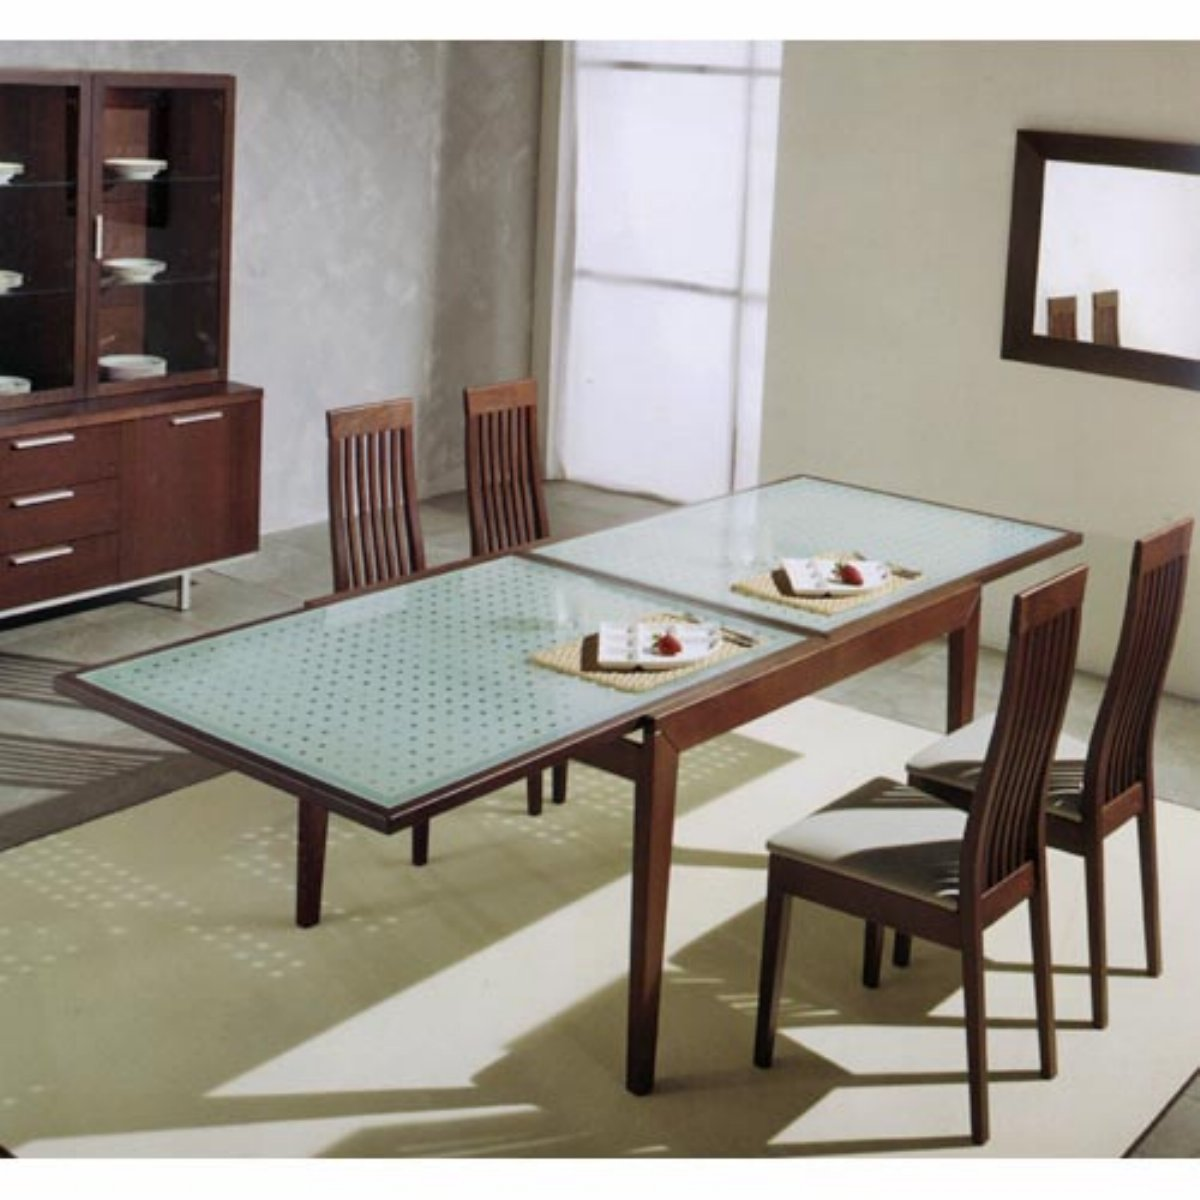 Extendable glass top dining table decor ideasdecor ideas for Best extendable dining table